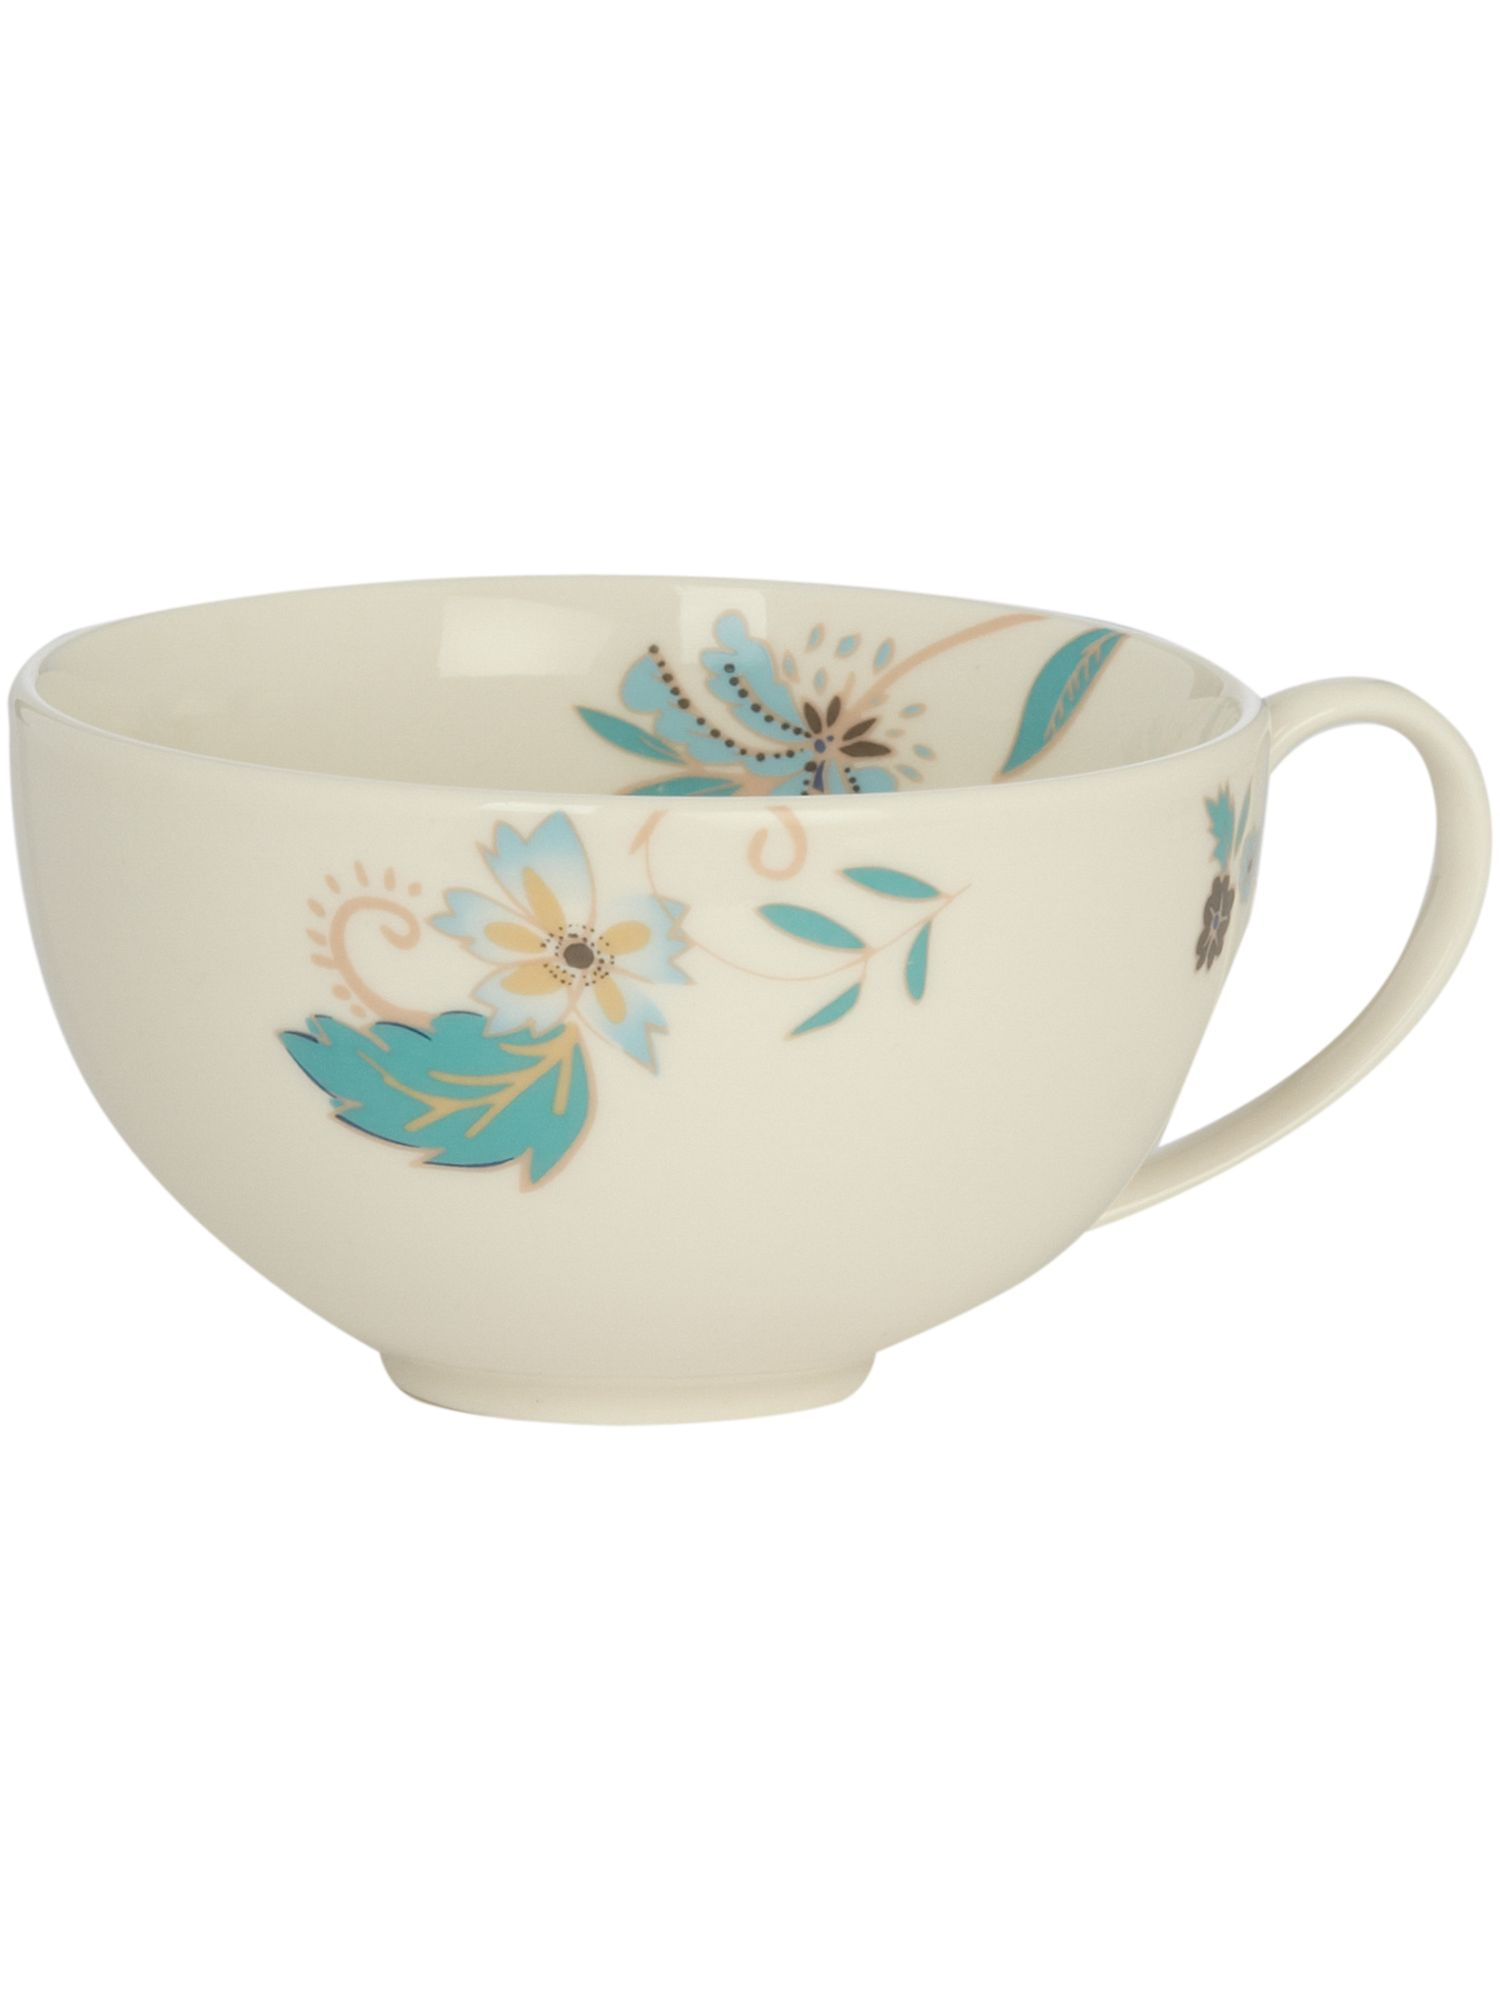 Monsoon Veronica Teacup